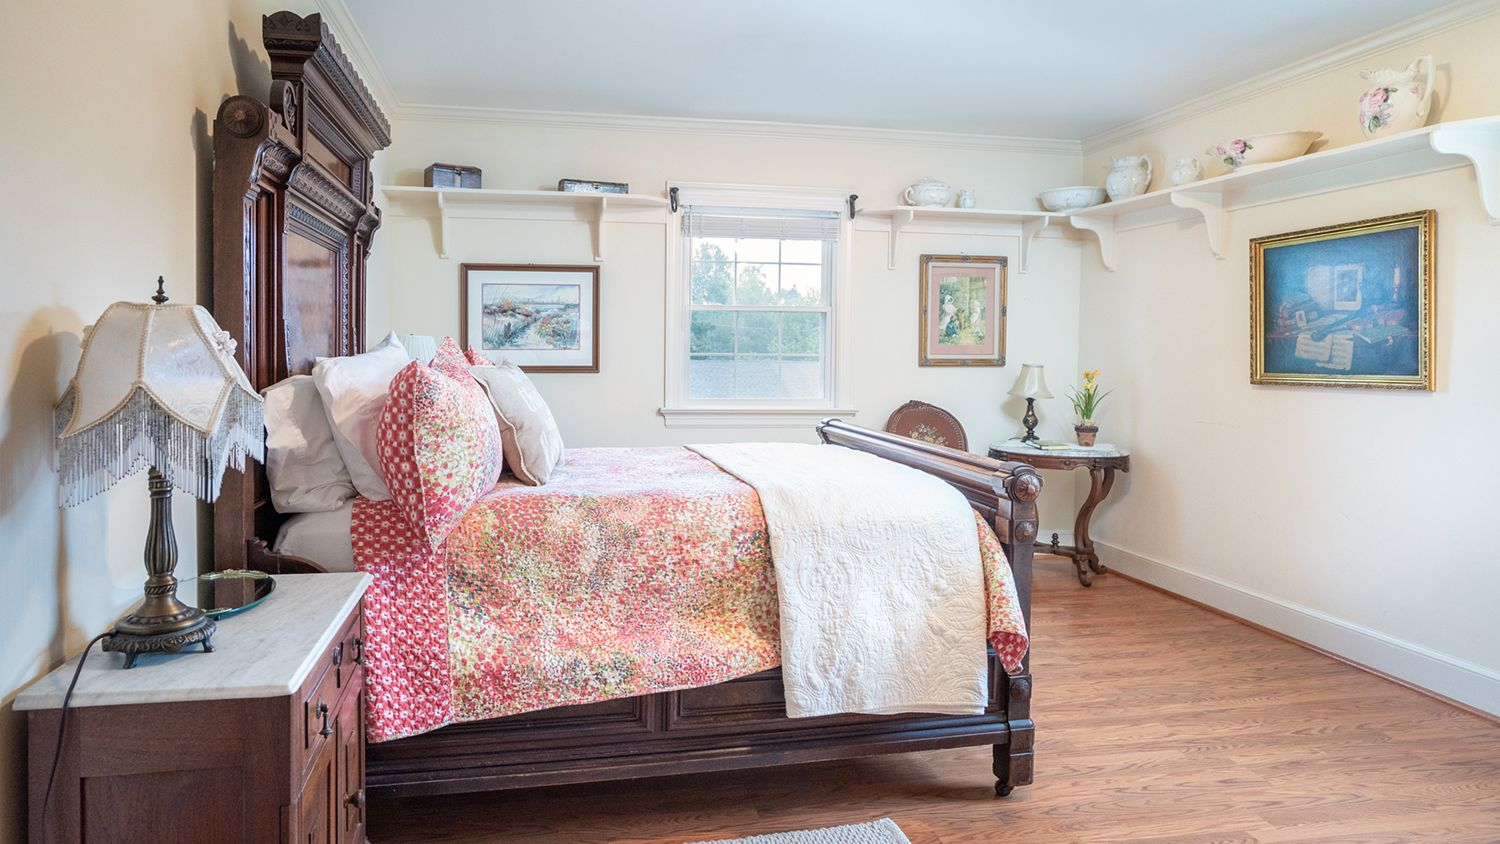 Double Bed Victorian Guest Room in the Farmhouse